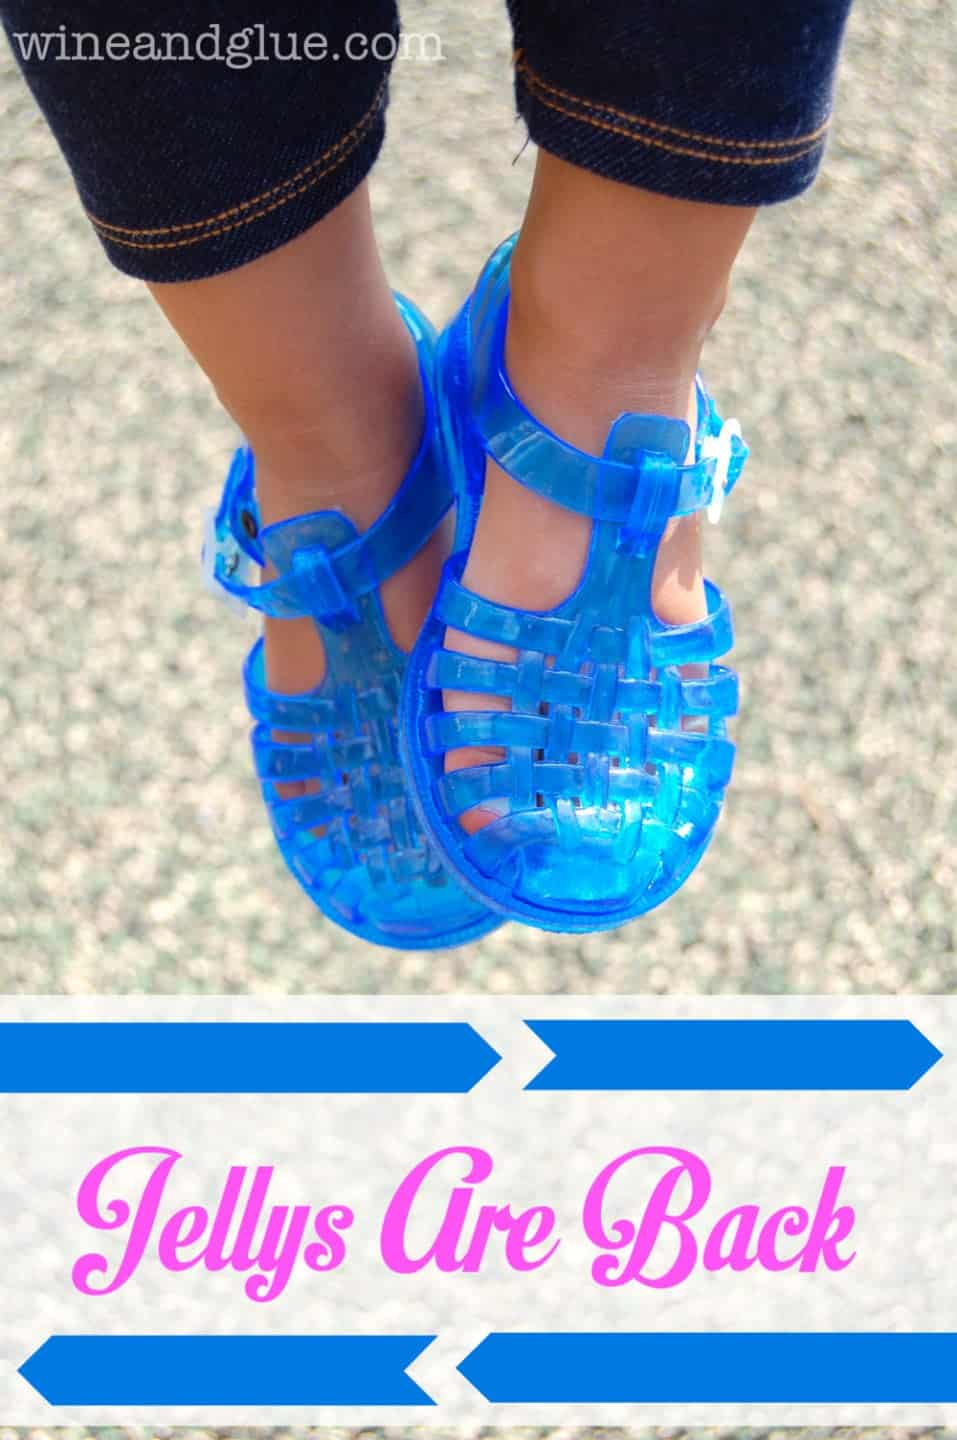 Jelly Bean shoes are the perfect comfortable cute shoe for any summer activity via www.wineandglue.com #JellysAreBack #pmedia #ad